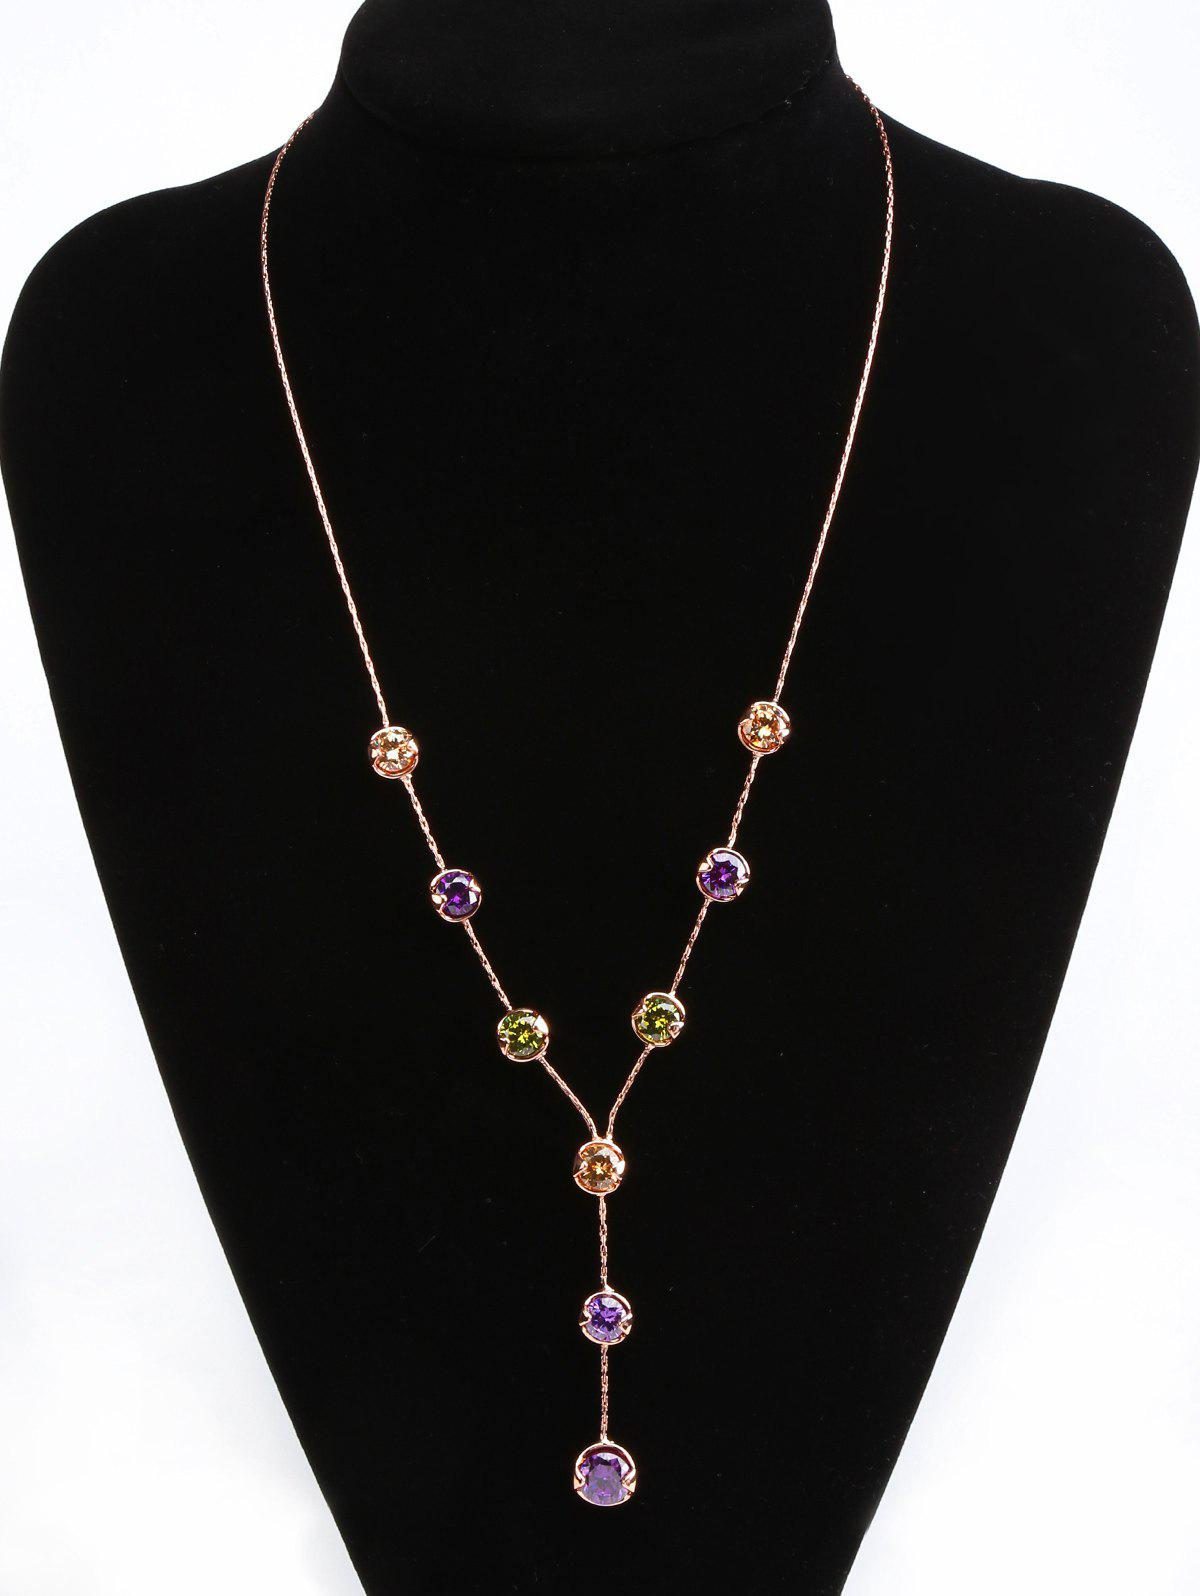 New Artificial Gemstone Y-Shaped Pendant Necklace